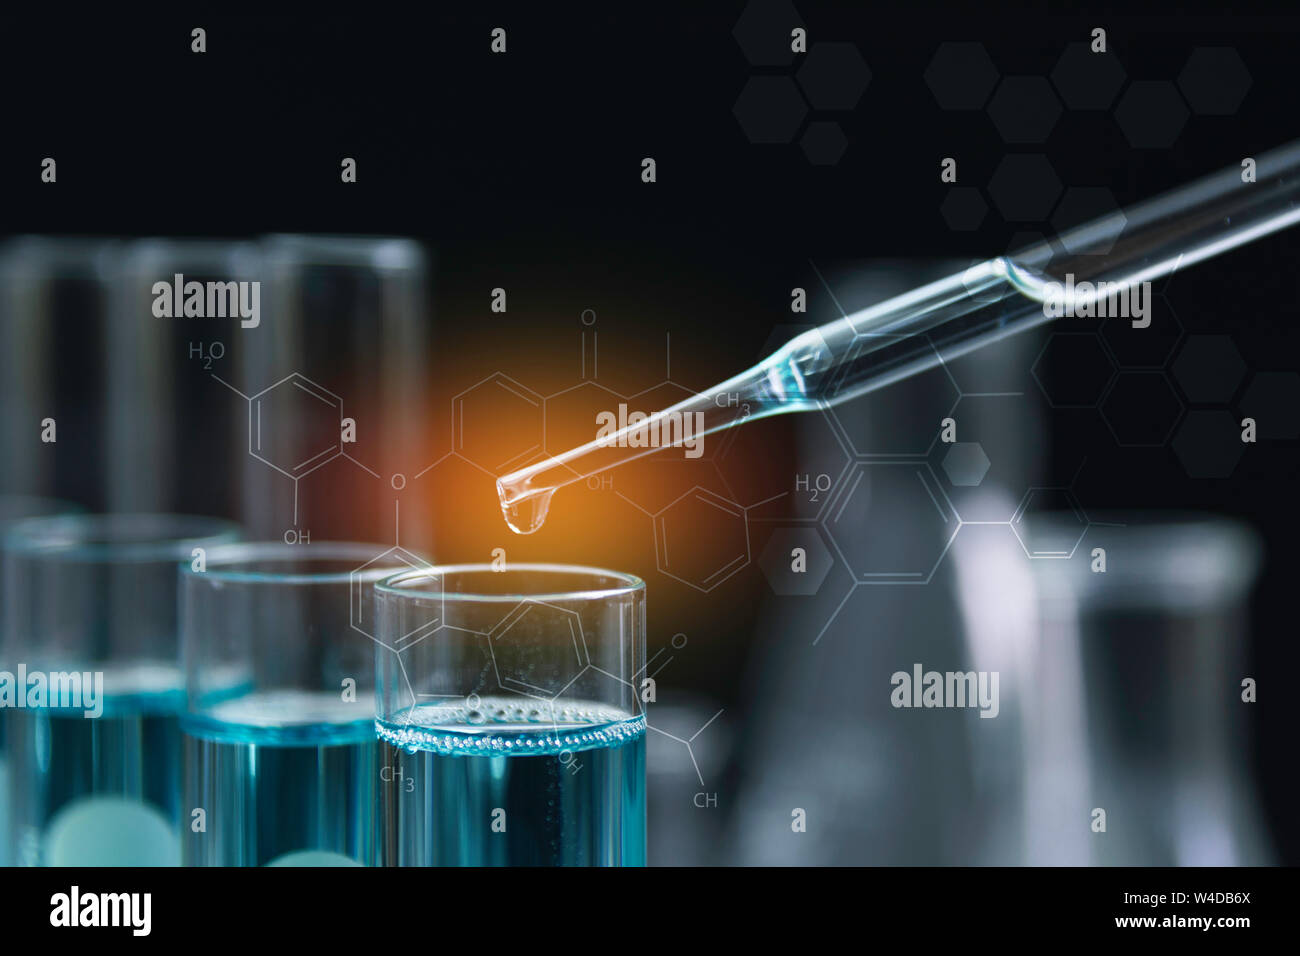 Glass laboratory chemical test tubes with liquid for analytical , medical, pharmaceutical and scientific research concept. Stock Photo